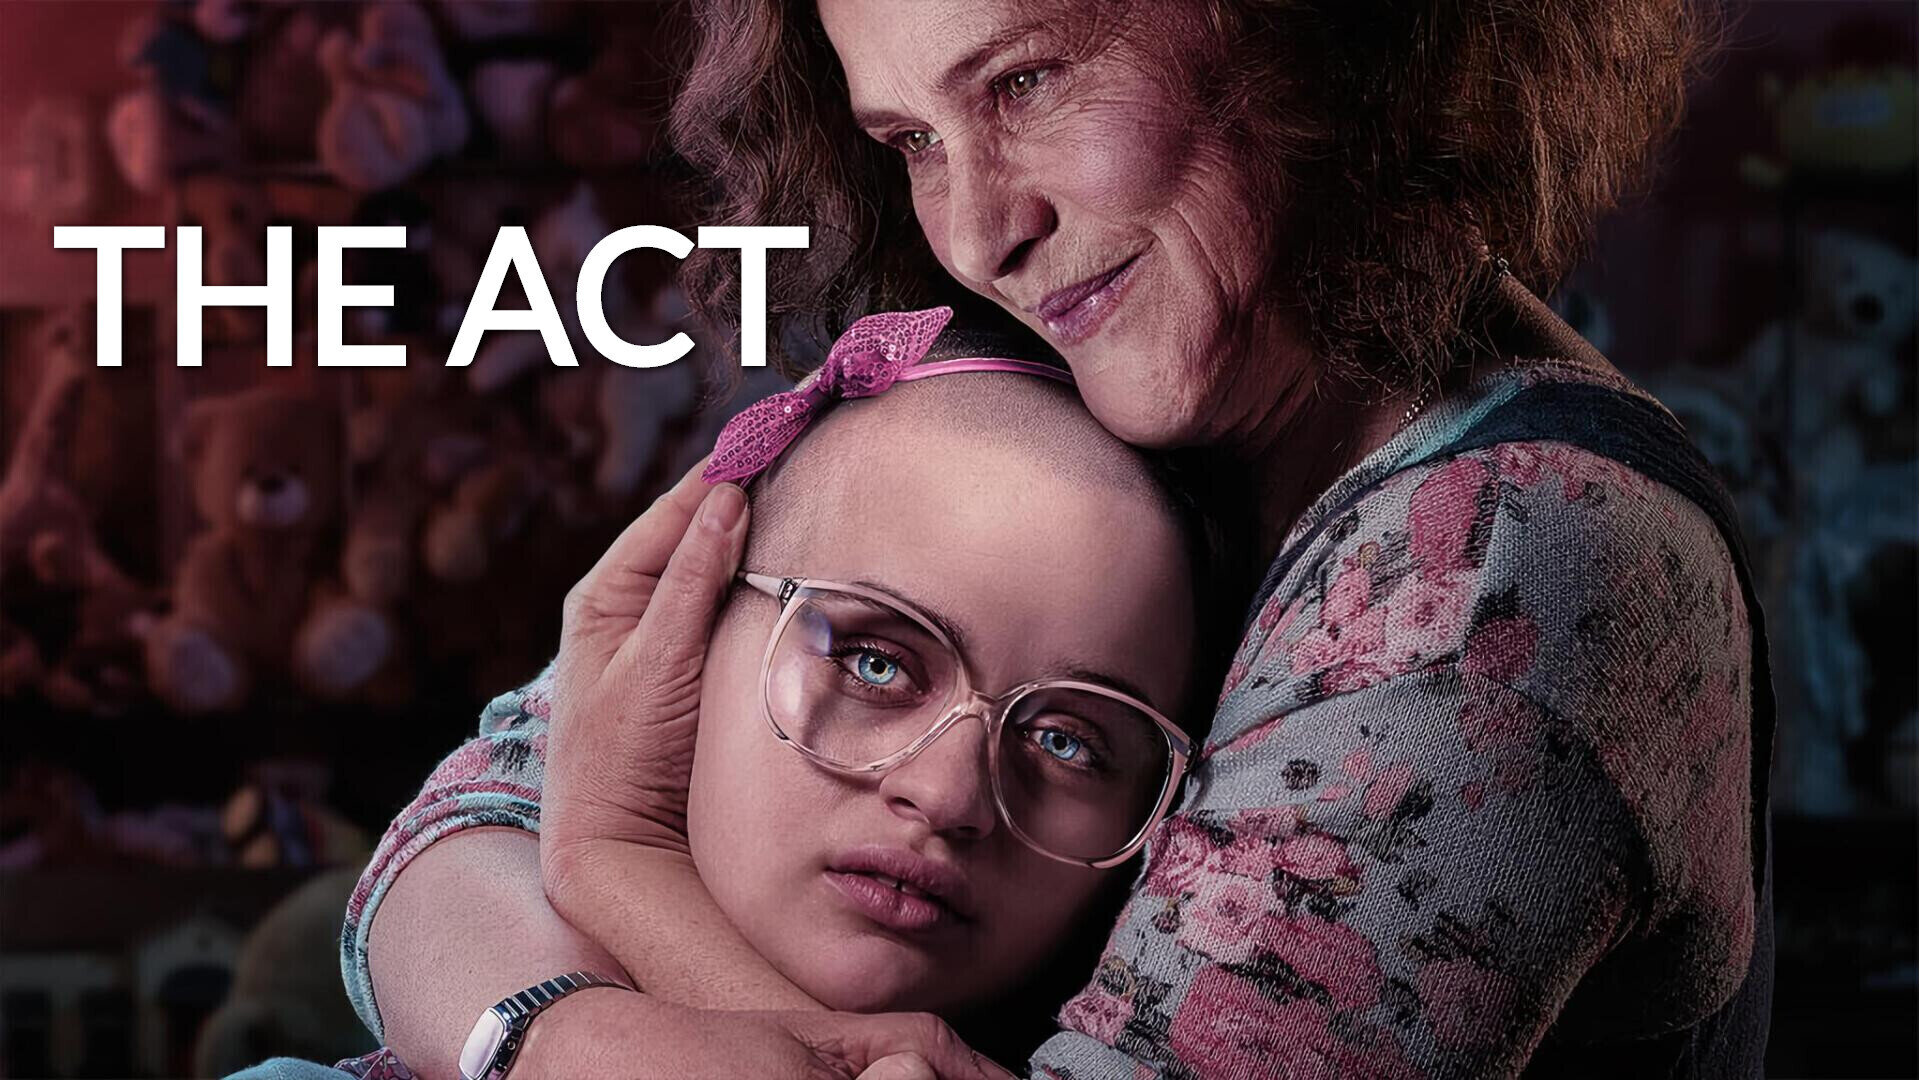 The Act - Free